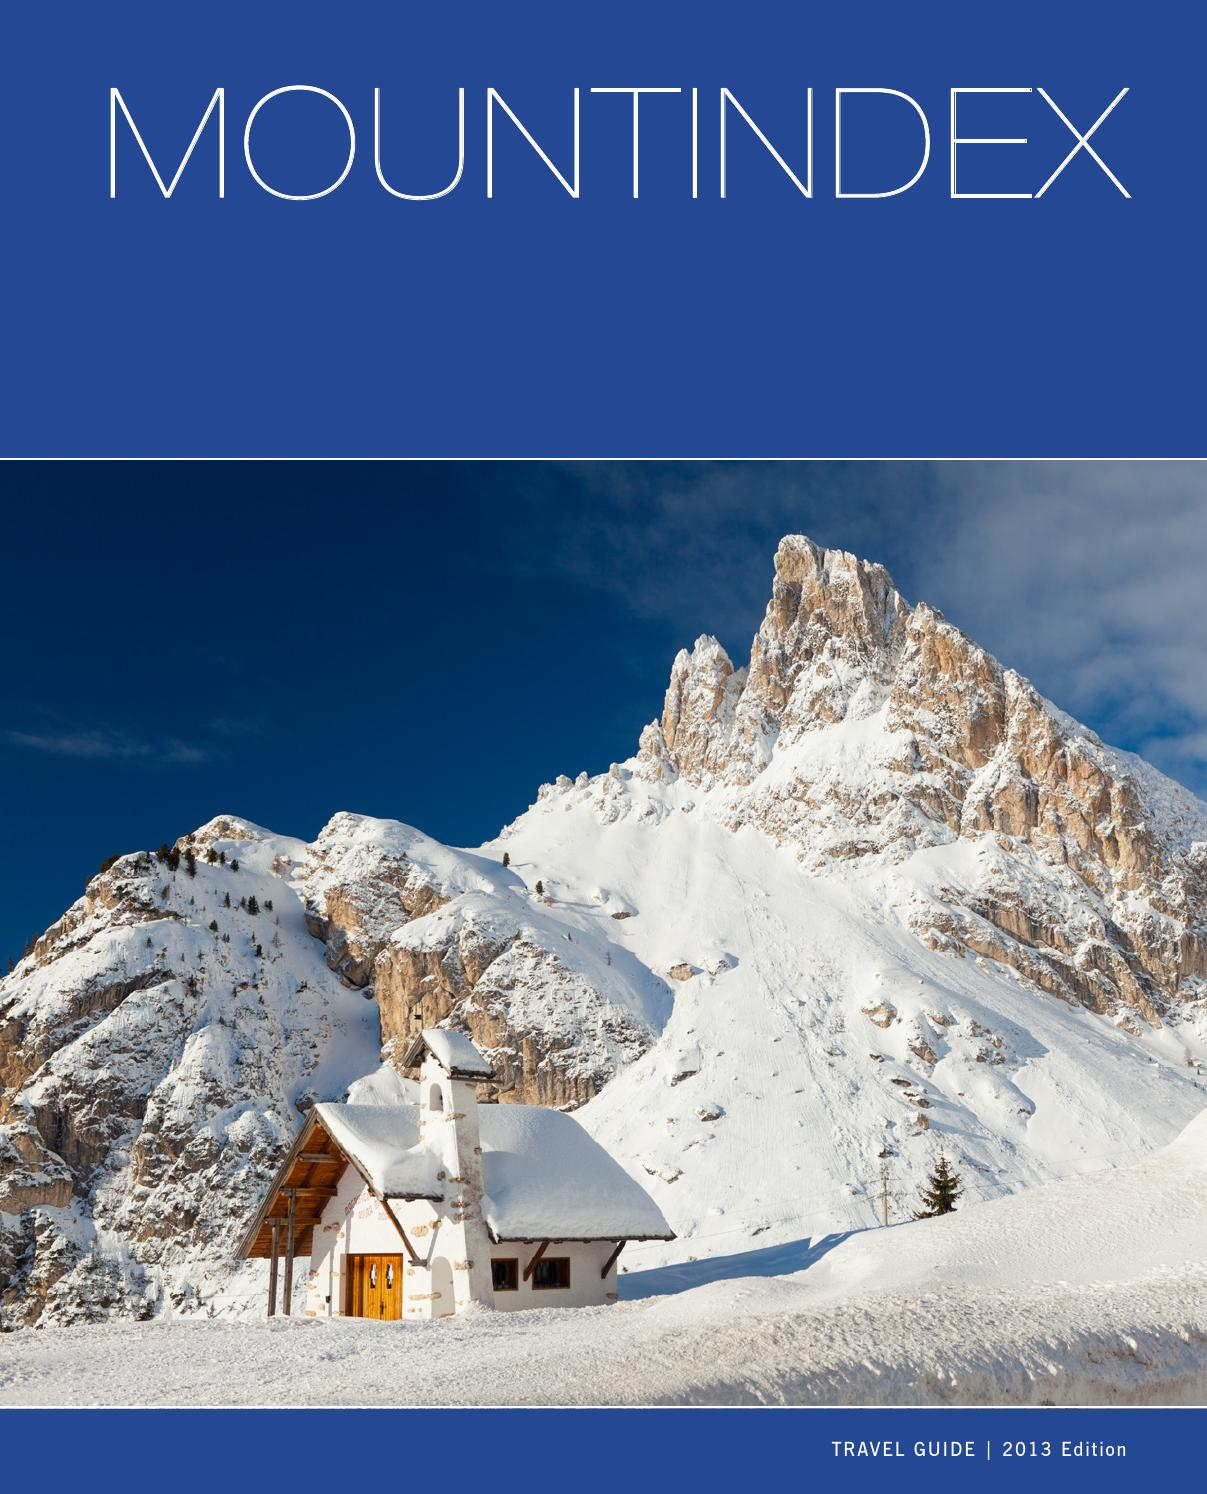 Italian Mountindex Visititaly By Grafica Promax Issuu